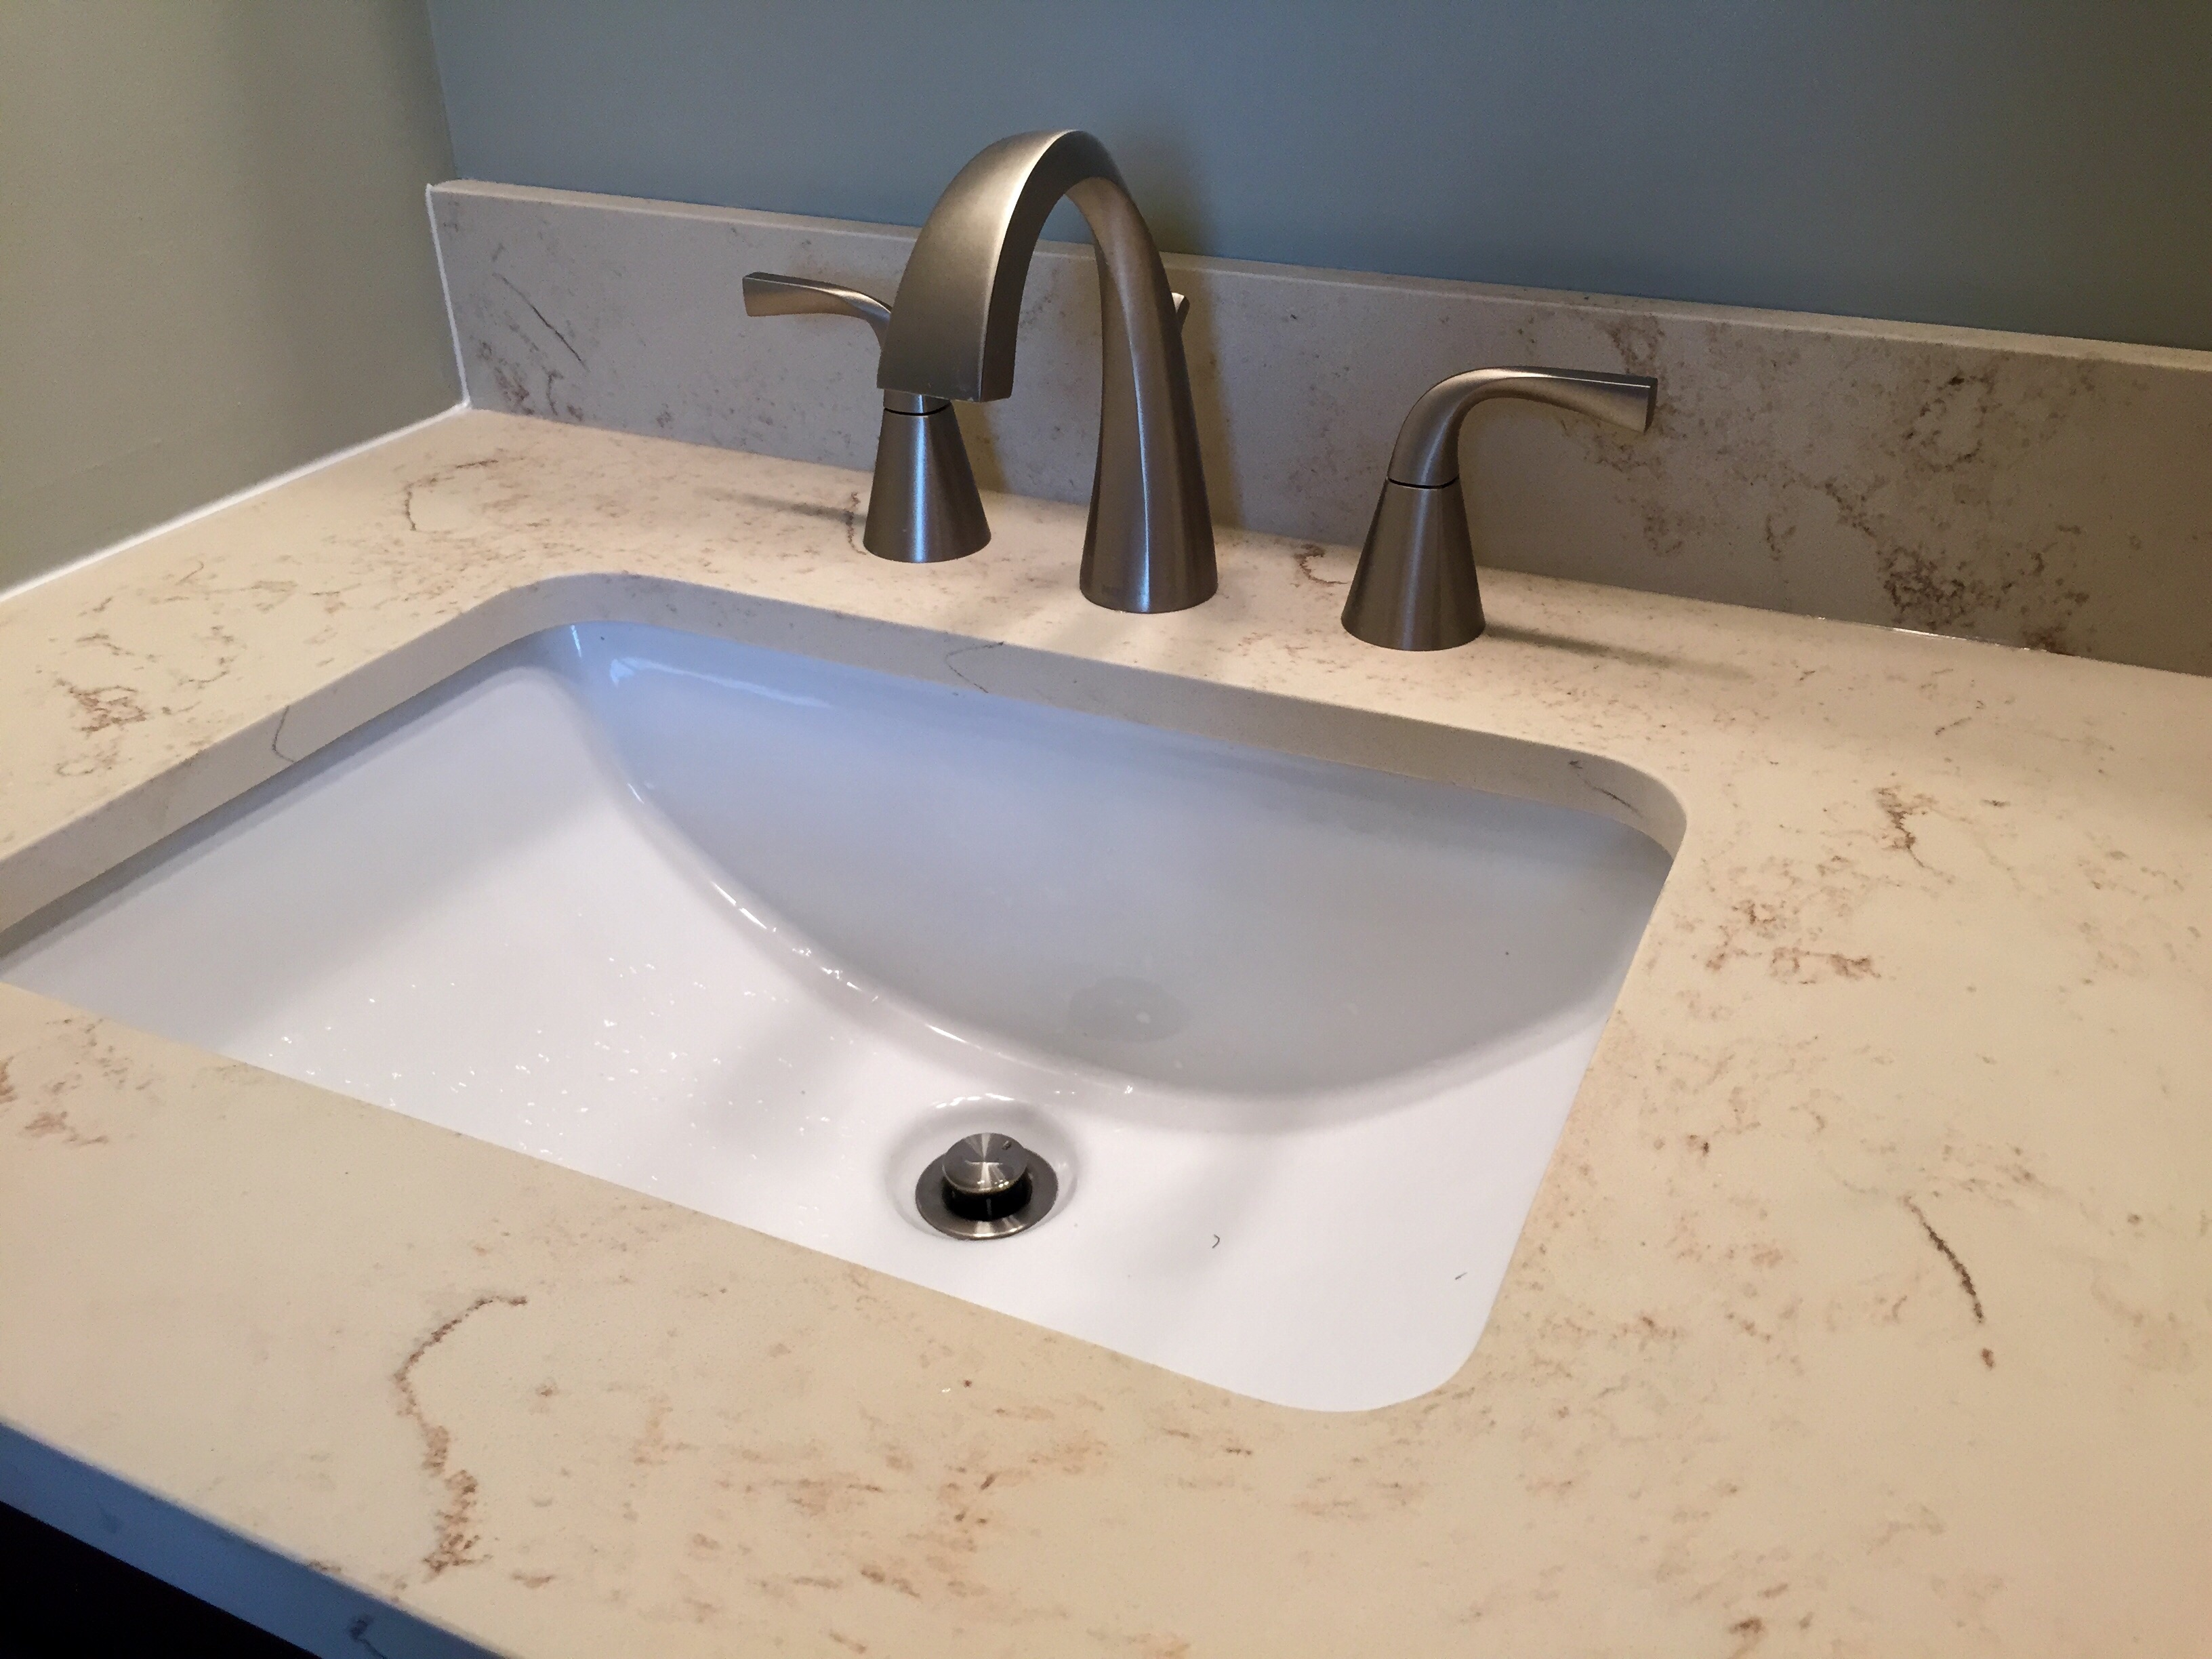 low water pressure kitchen sink terraneg and my kitchen faucet has